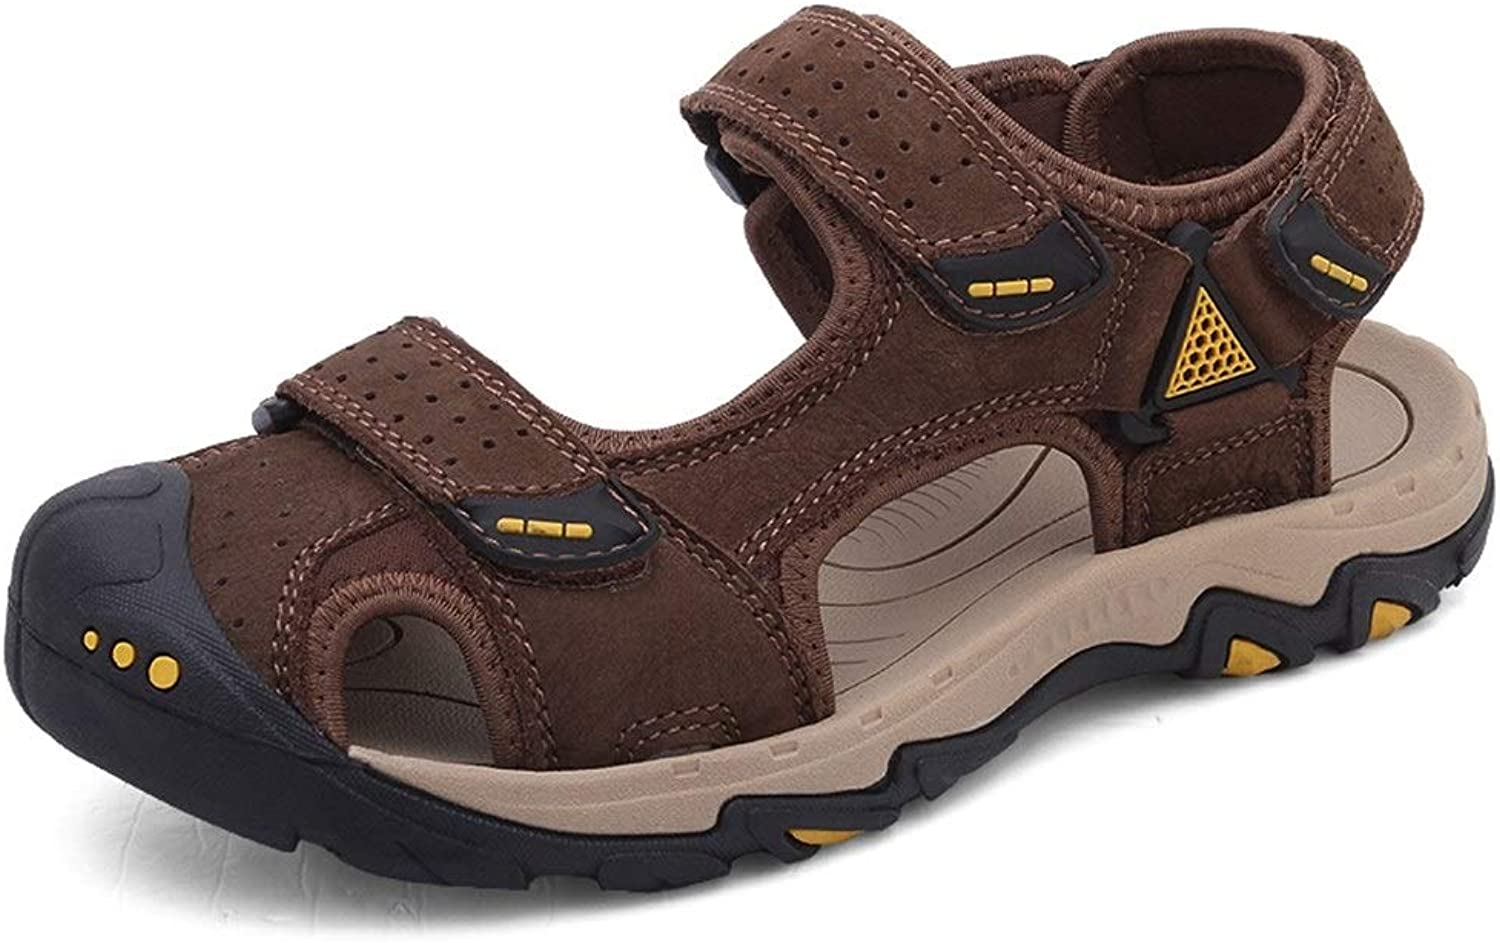 Easy Go Shopping Hiking Sandals for Men Summer Water Beach shoes Suede Leather Mesh Fabric Lining Hook&Loop Strap Cricket shoes (color   Brown, Size   9.5 UK)